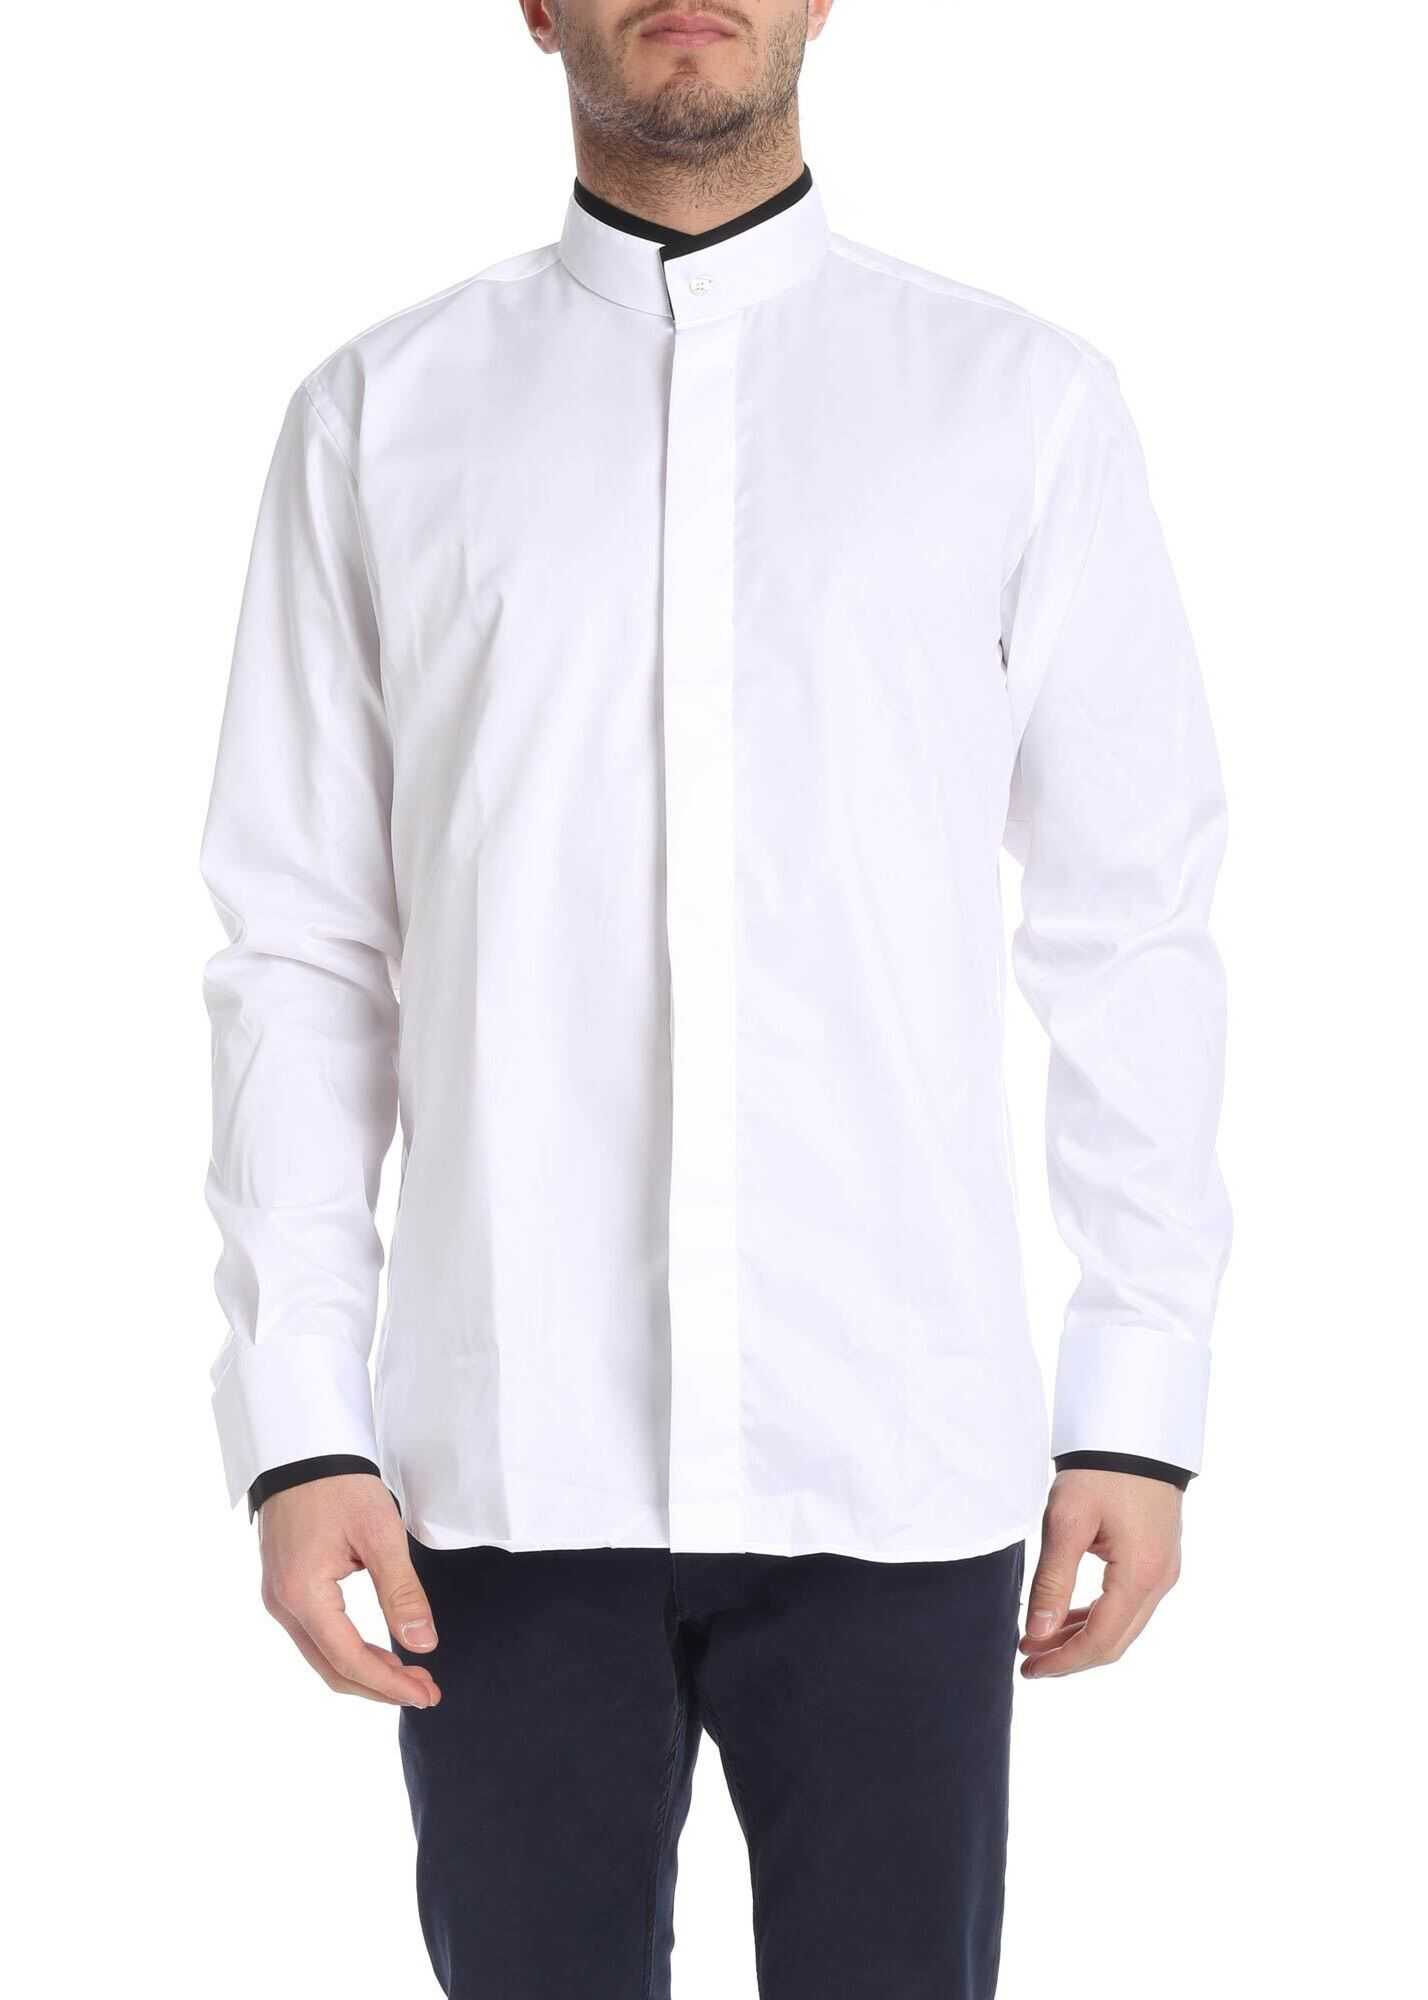 Karl Lagerfeld White Shirt With Contrasting Details White imagine